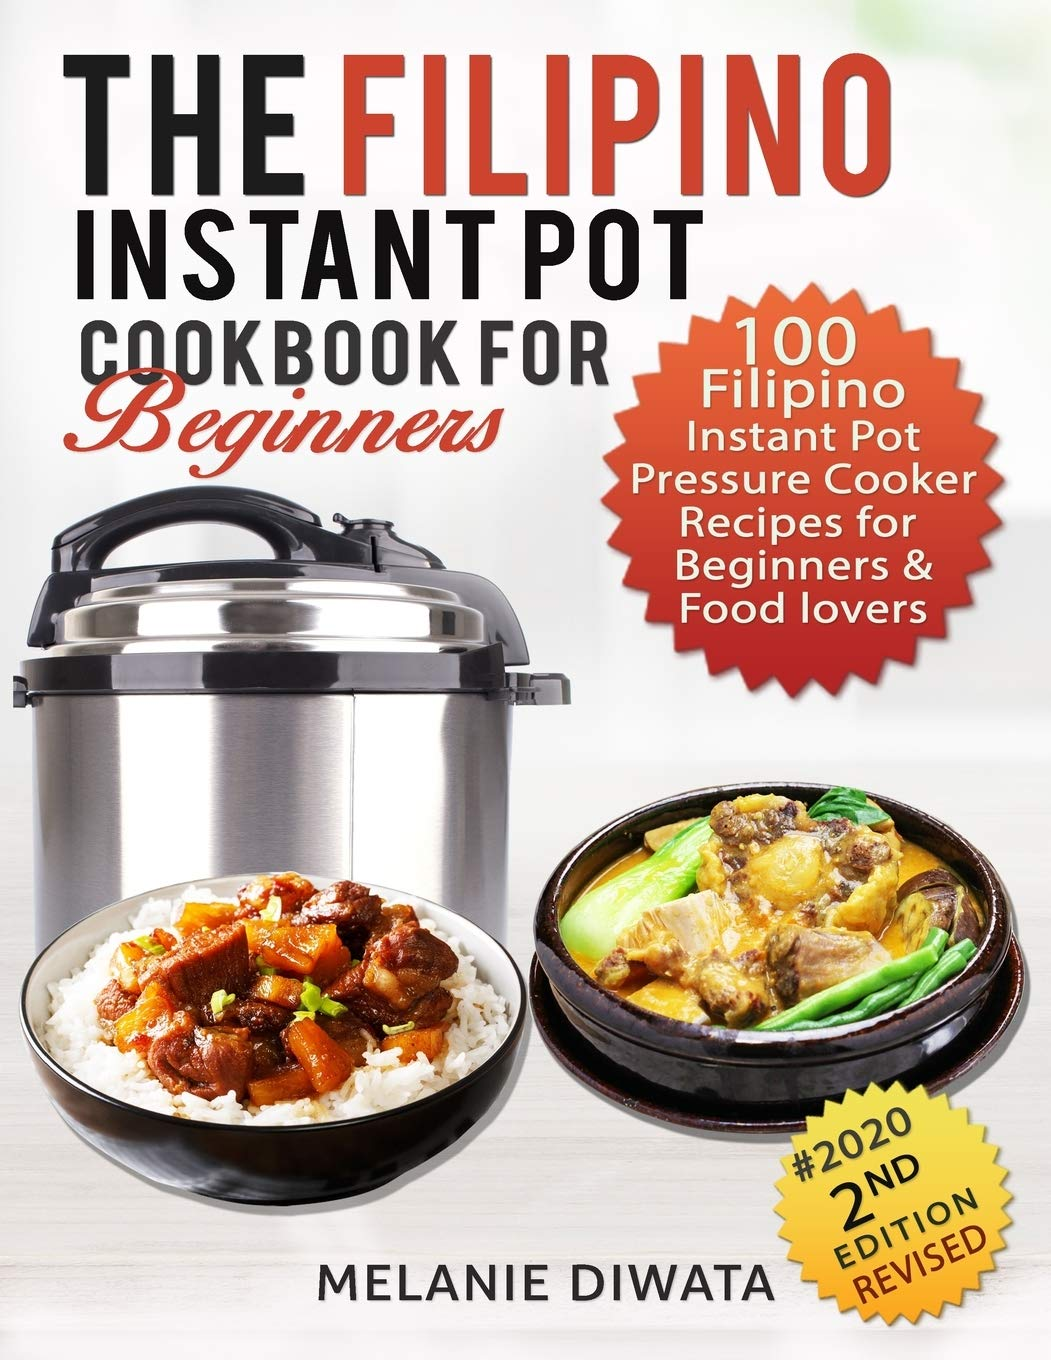 The Filipino Instant Pot Cookbook For Beginners 100 Tasty Filipino Instant Pot Electric Pressure Cooker Recipes For Beginners And Food Lovers Diwata Melanie 9781658865906 Amazon Com Books